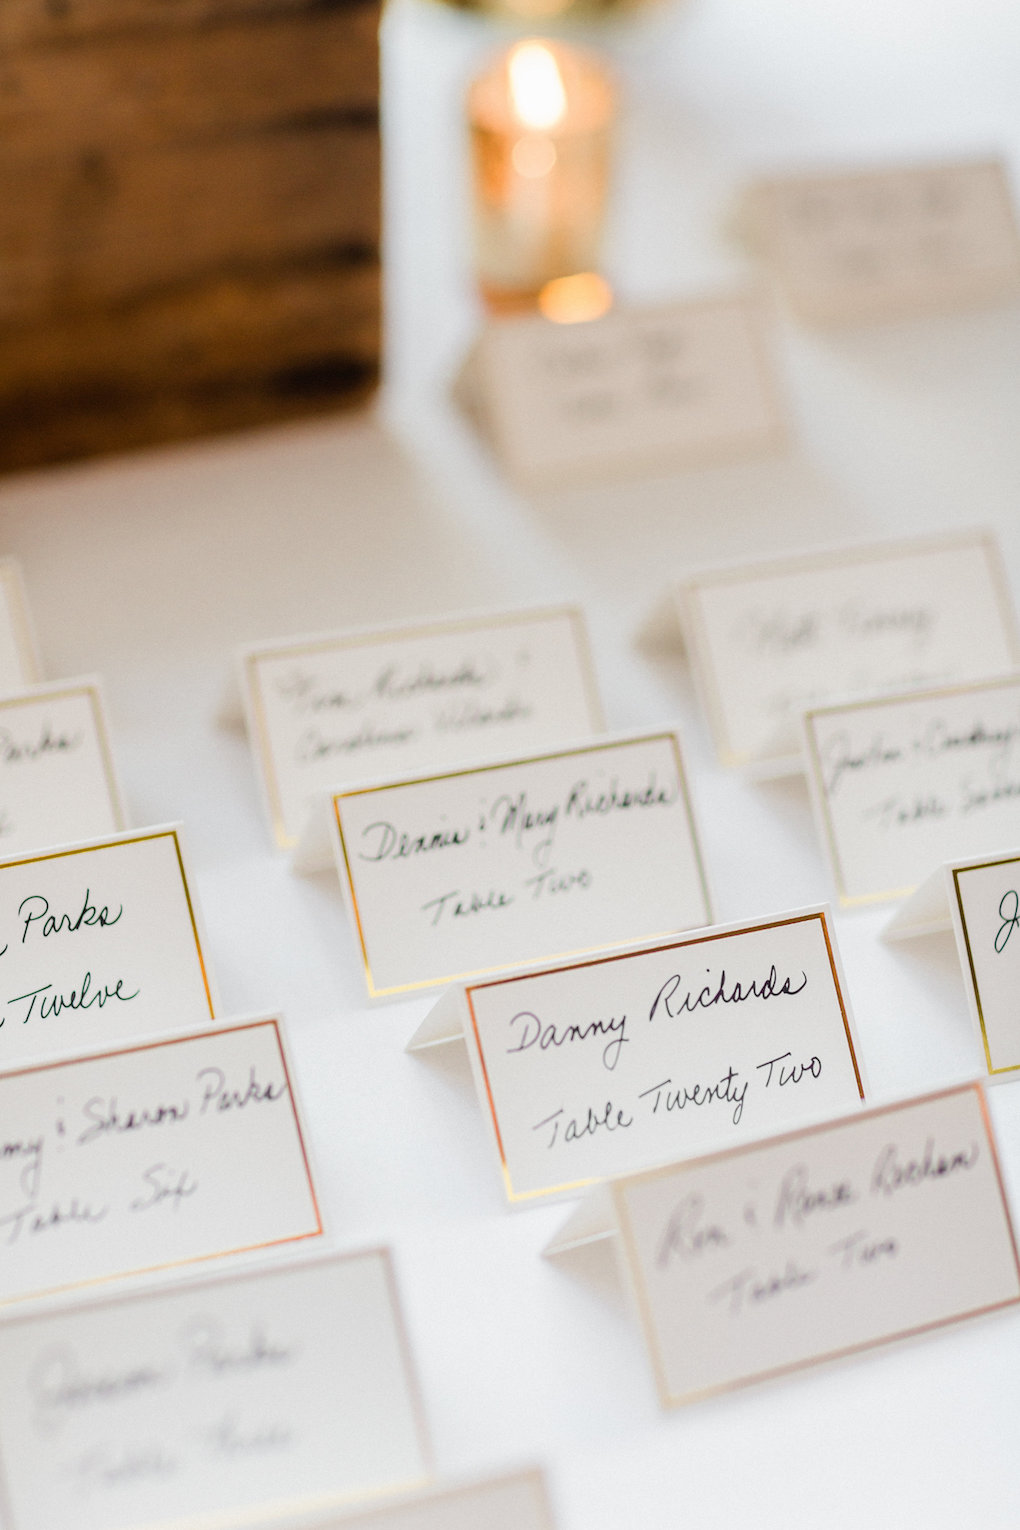 White and gold wedding escort cards for chic wedding in Buffalo, NY planned by Exhale Events. Find more timeless wedding inspiration at exhale-events.com!